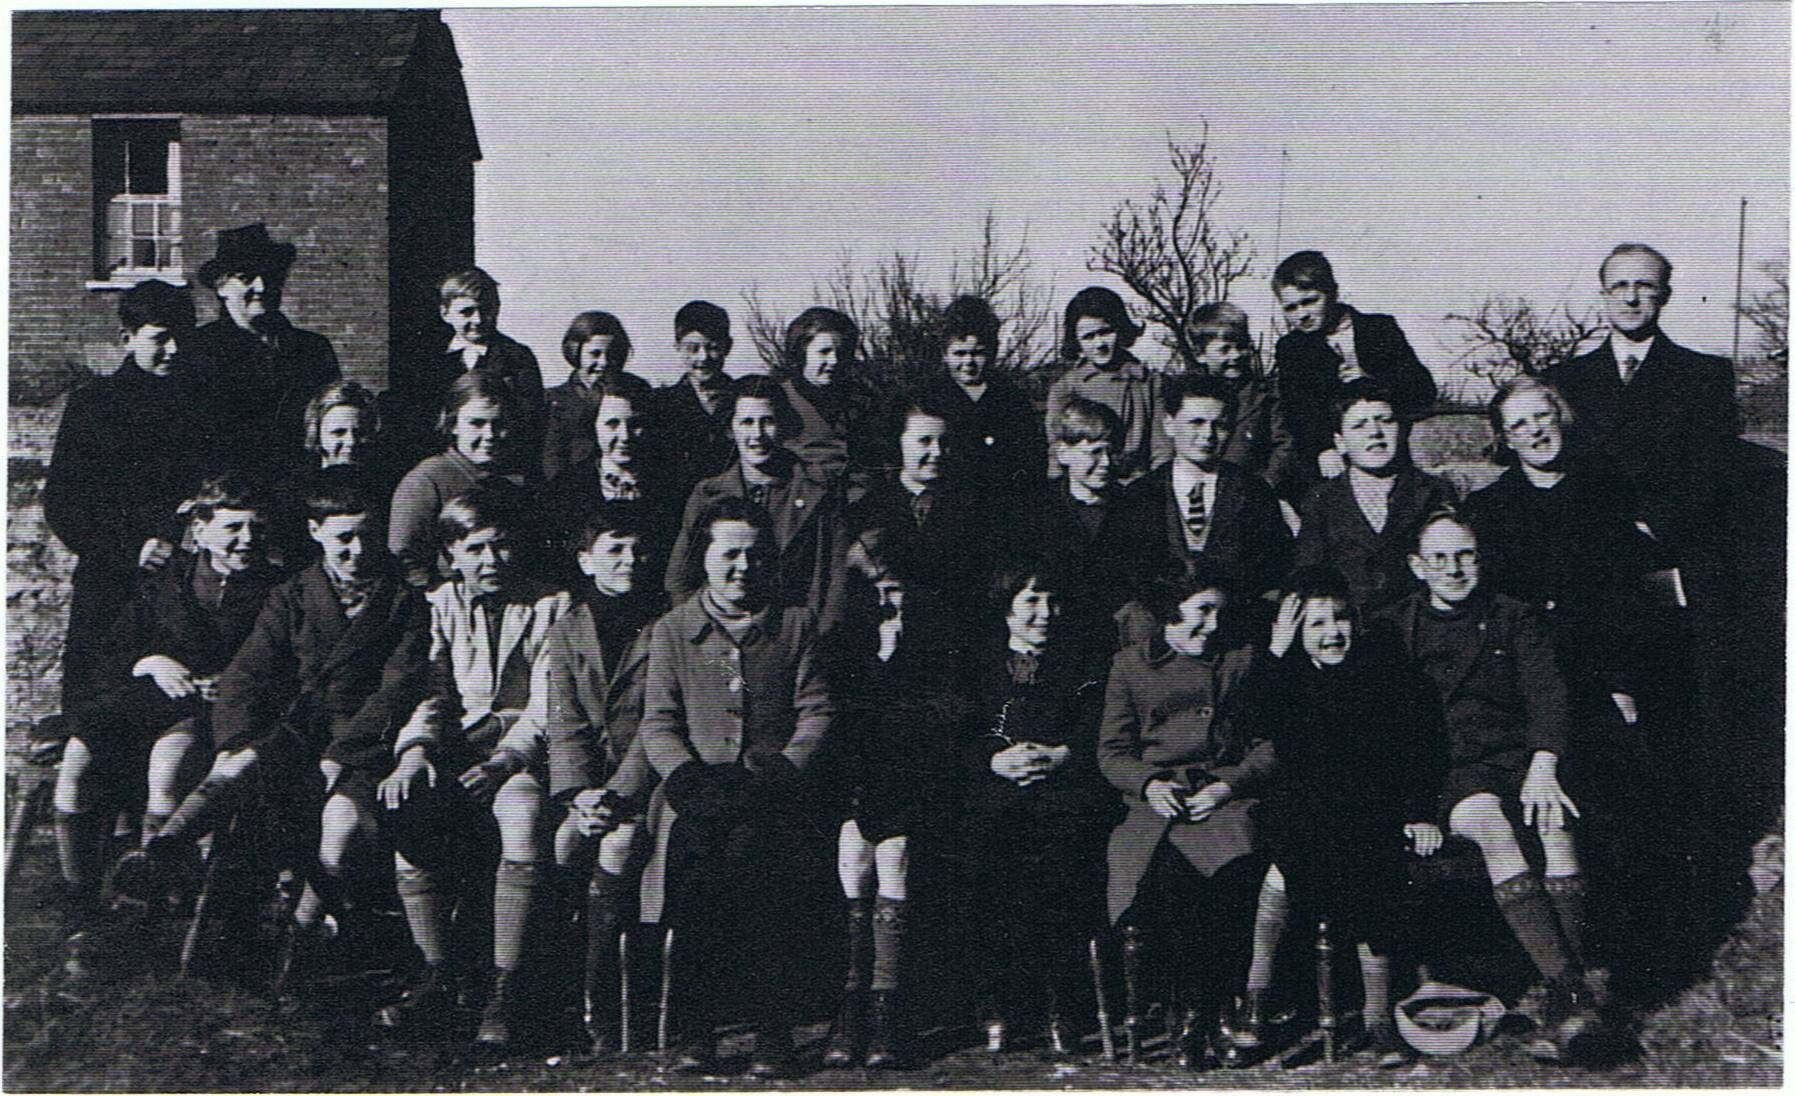 1940. Evacuees from St. Anthony's School, Forest Hill at Steeple Aston School. Mr Webster, headteacher of St. Anthony's, and his wife on the right and left of the photo. Their son is standing next to Mrs. Webster.